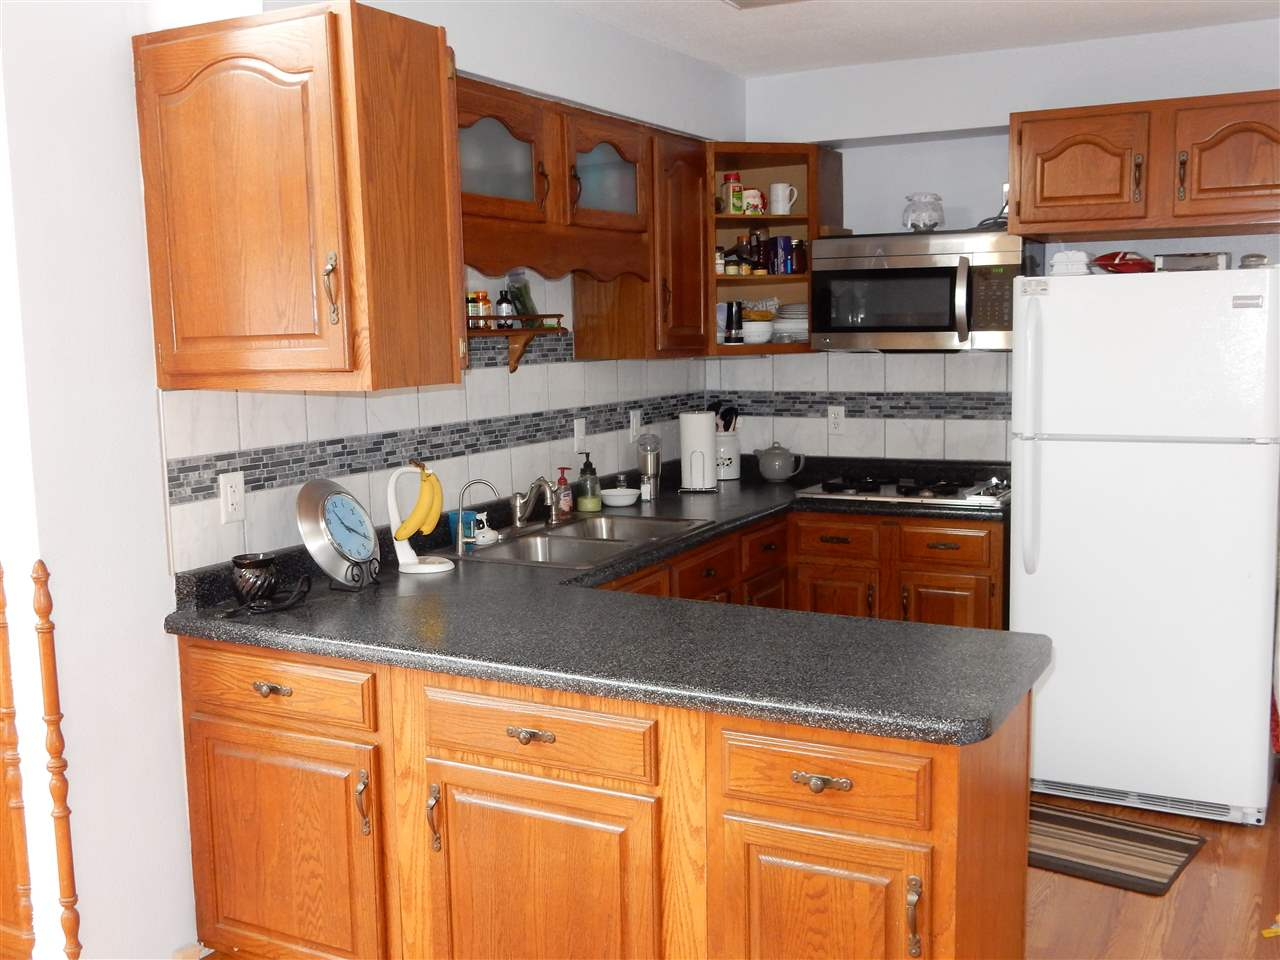 Country Kitchen Platteville Wi 4018 County Road O Potosi Wi For Sale Mls 1804219 Movoto